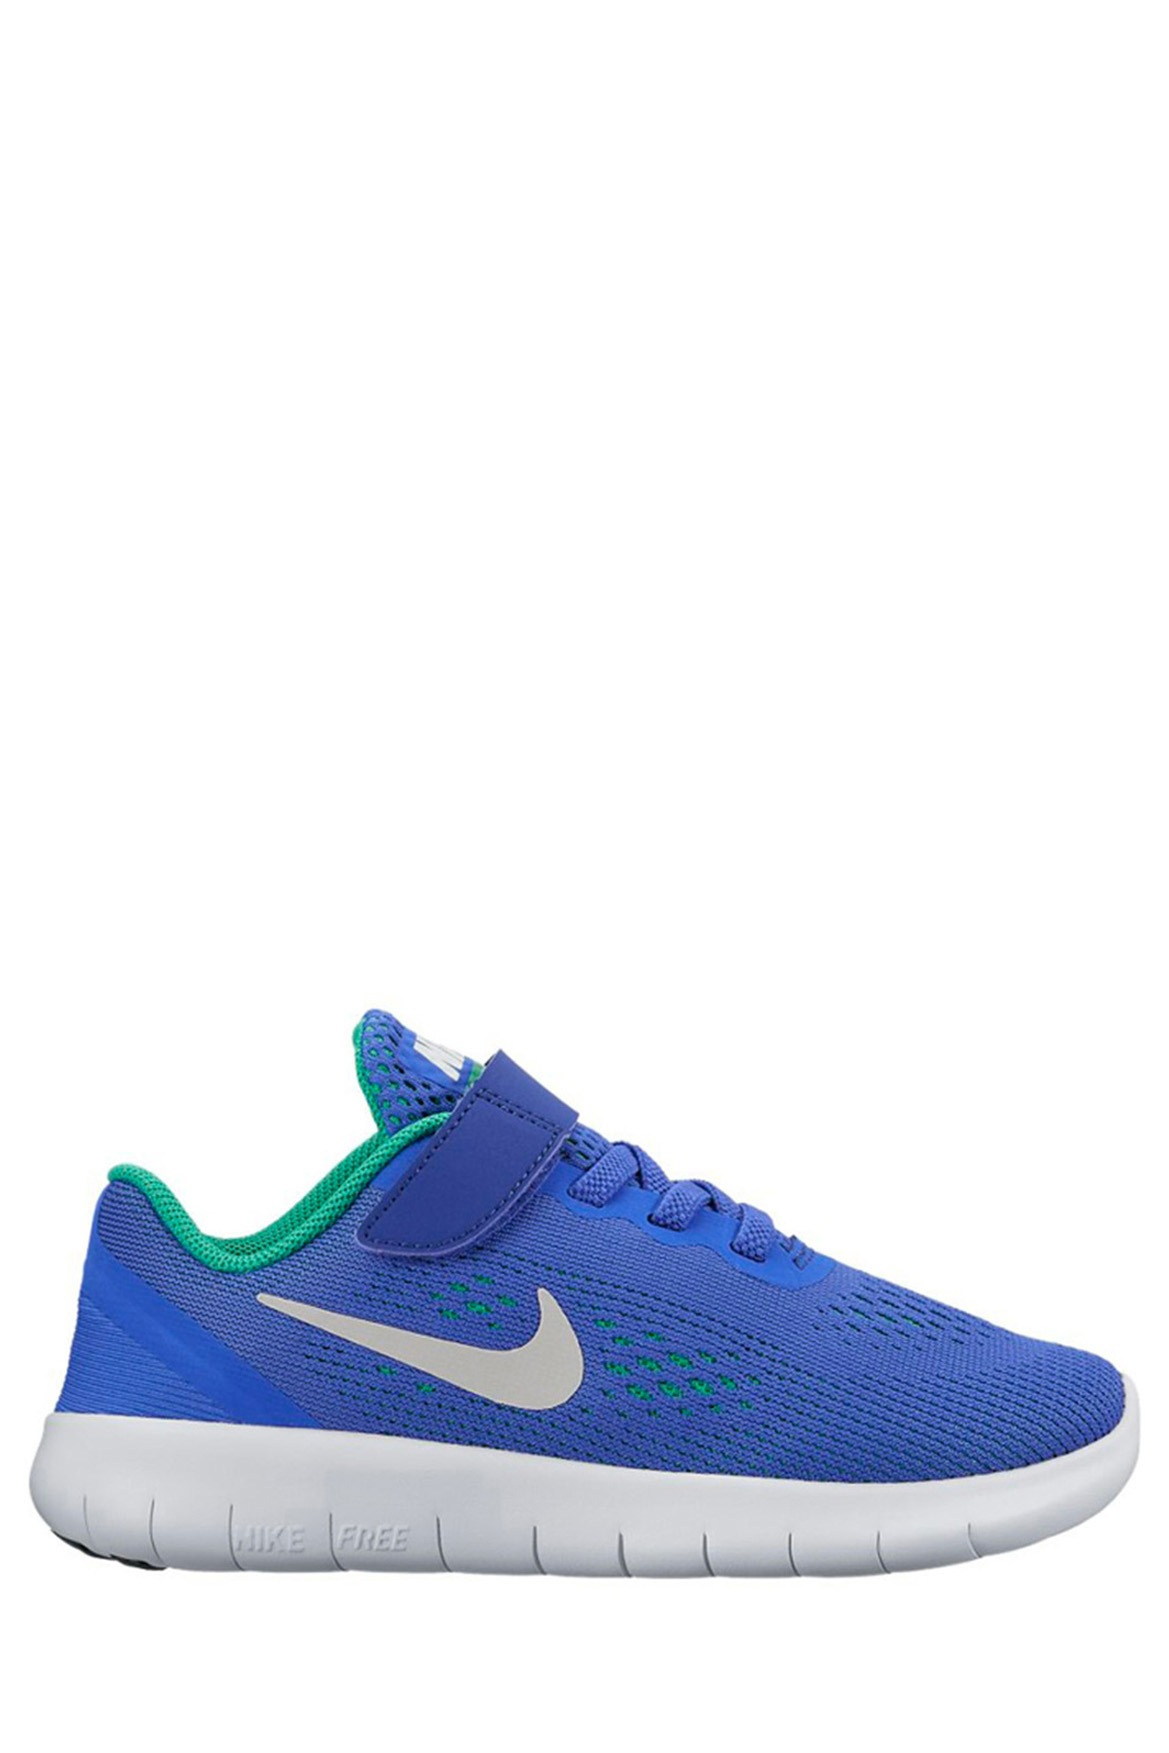 85789a2d948 ... Nike Free Run Ps Boys Myer Online ...